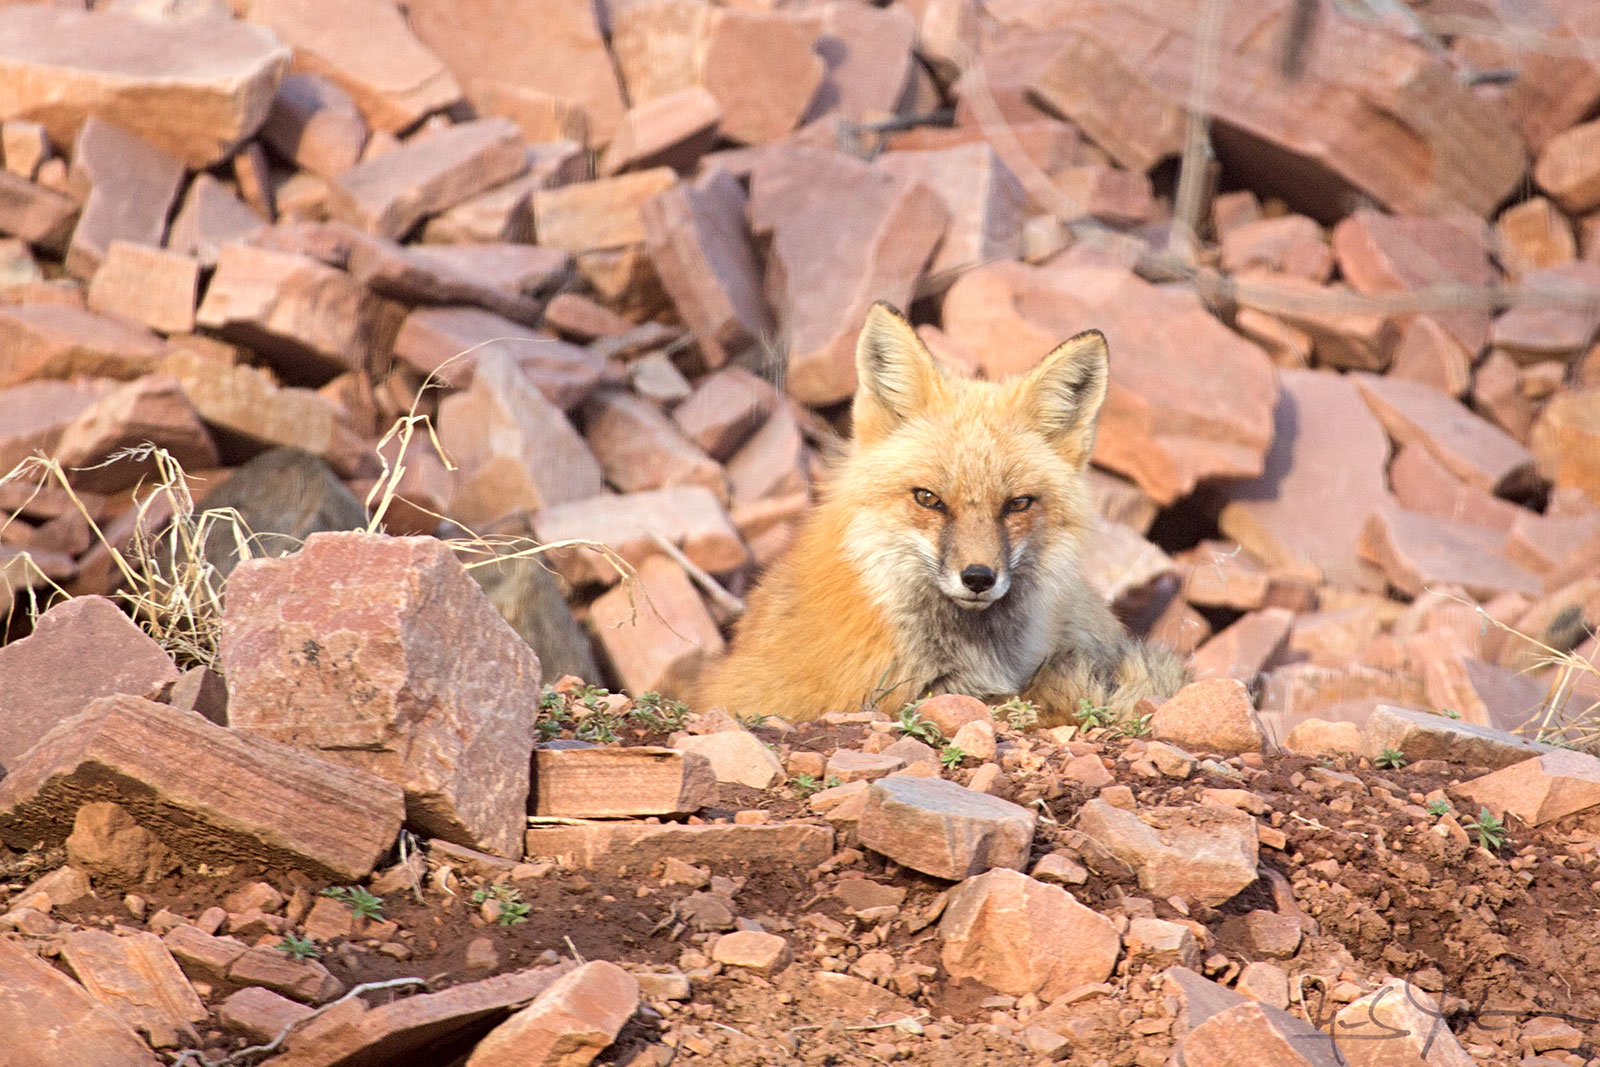 Mama carries the usual color scheme of the Red Fox - an orange-brown with white along the jaws and underneath.